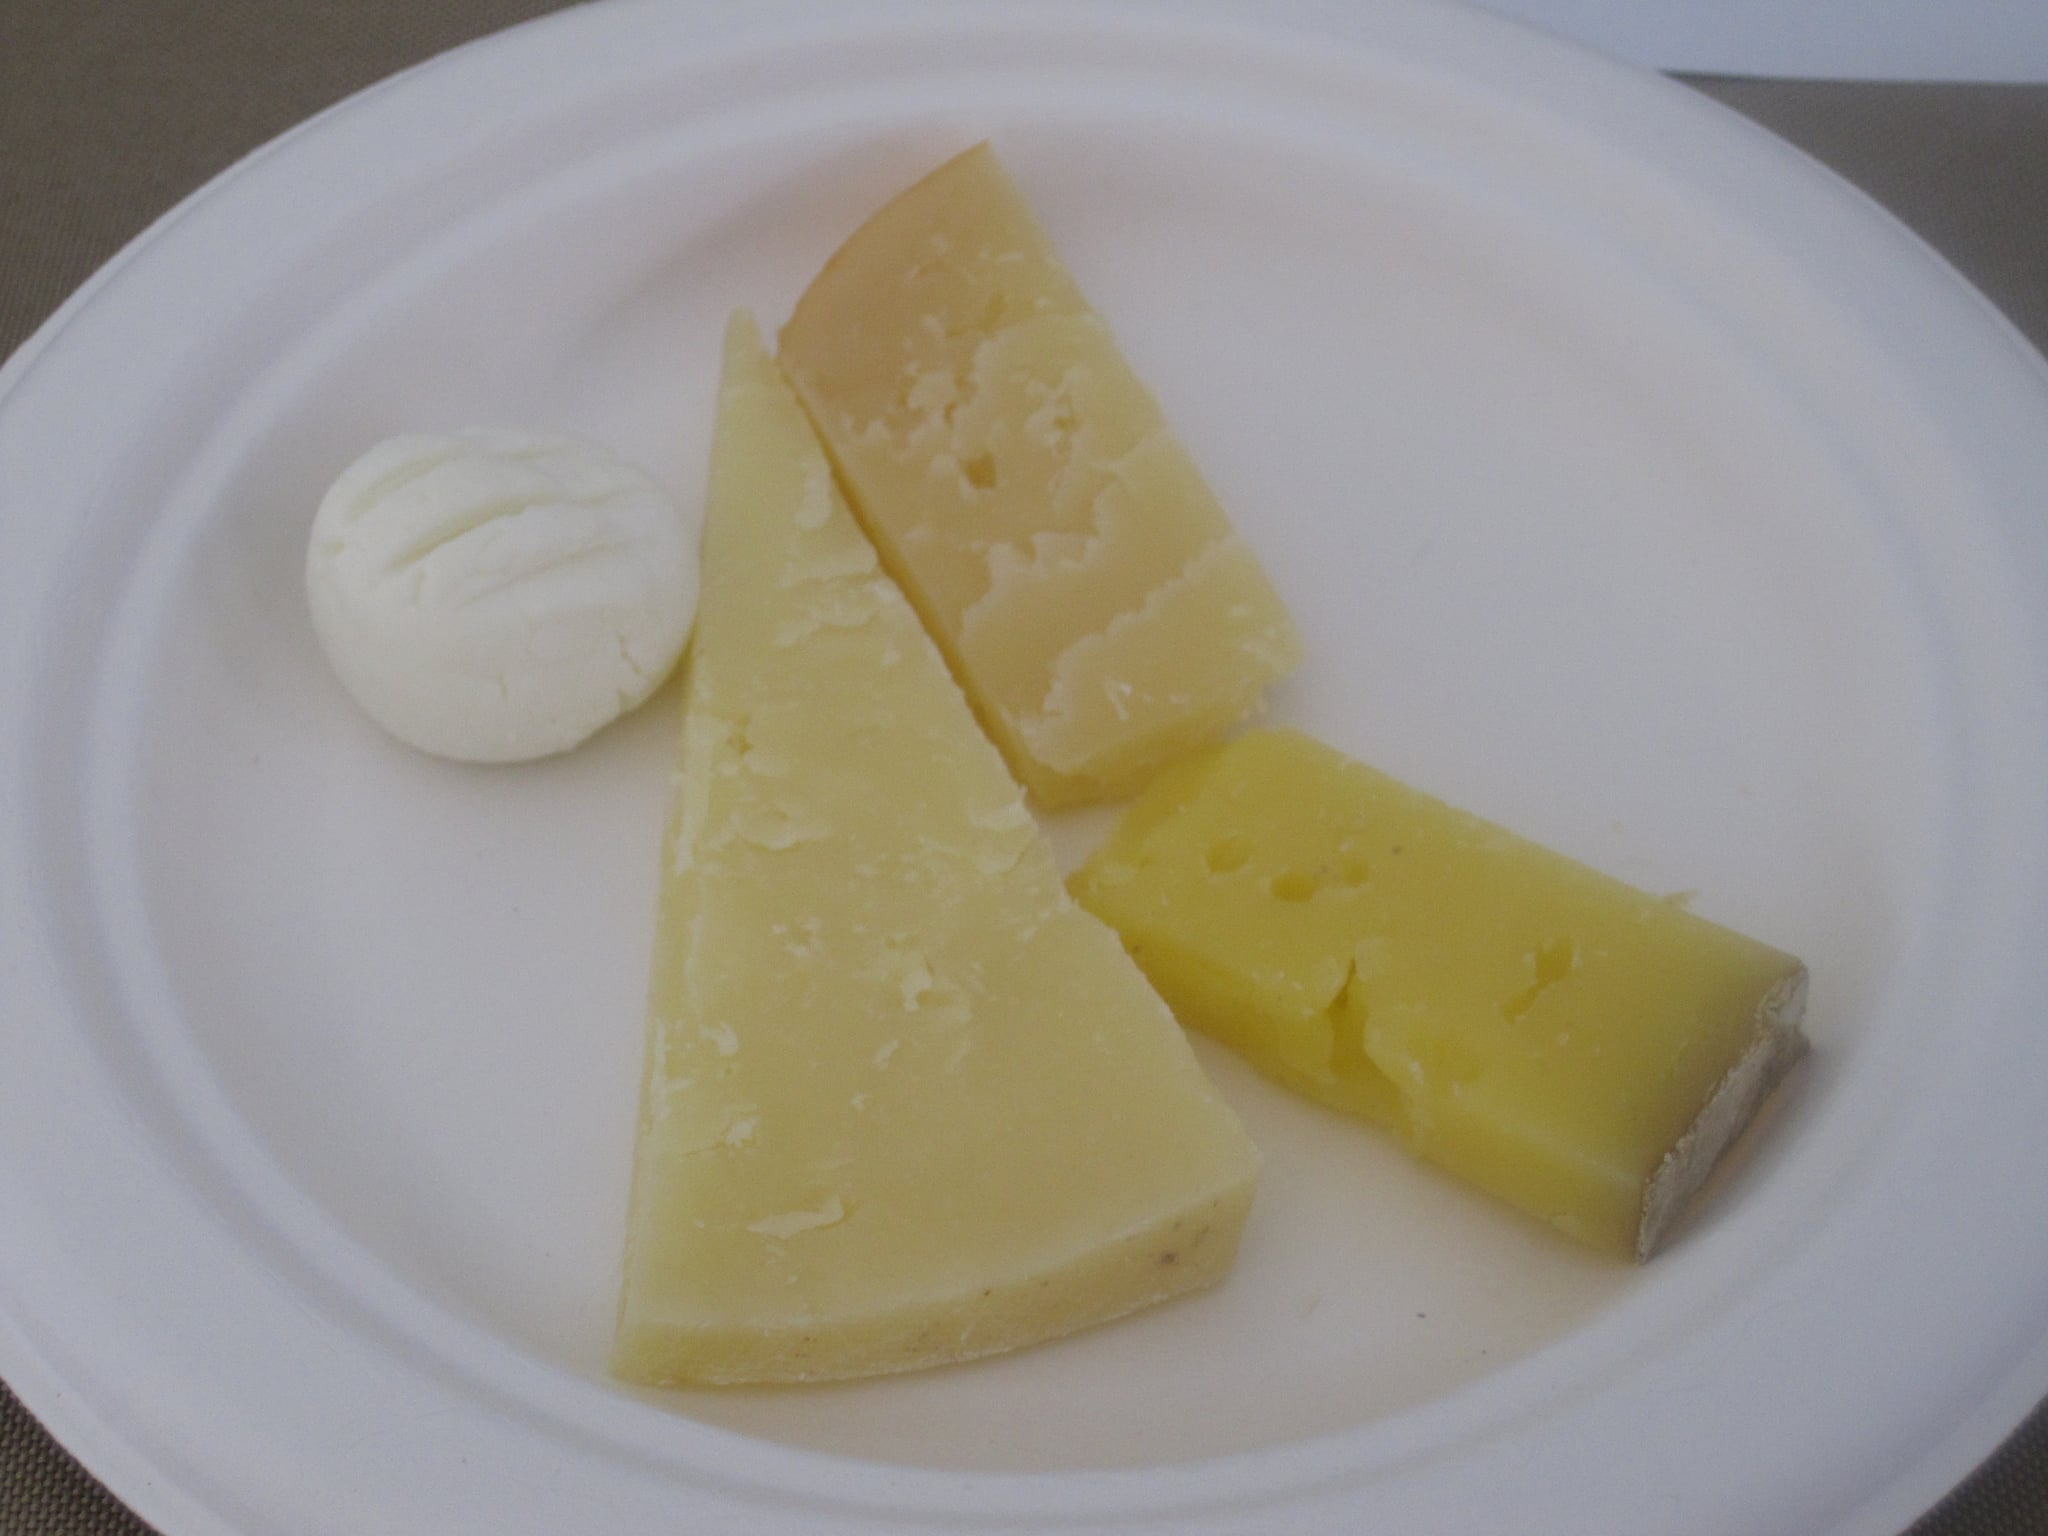 First we tasted the cheese by themselves.